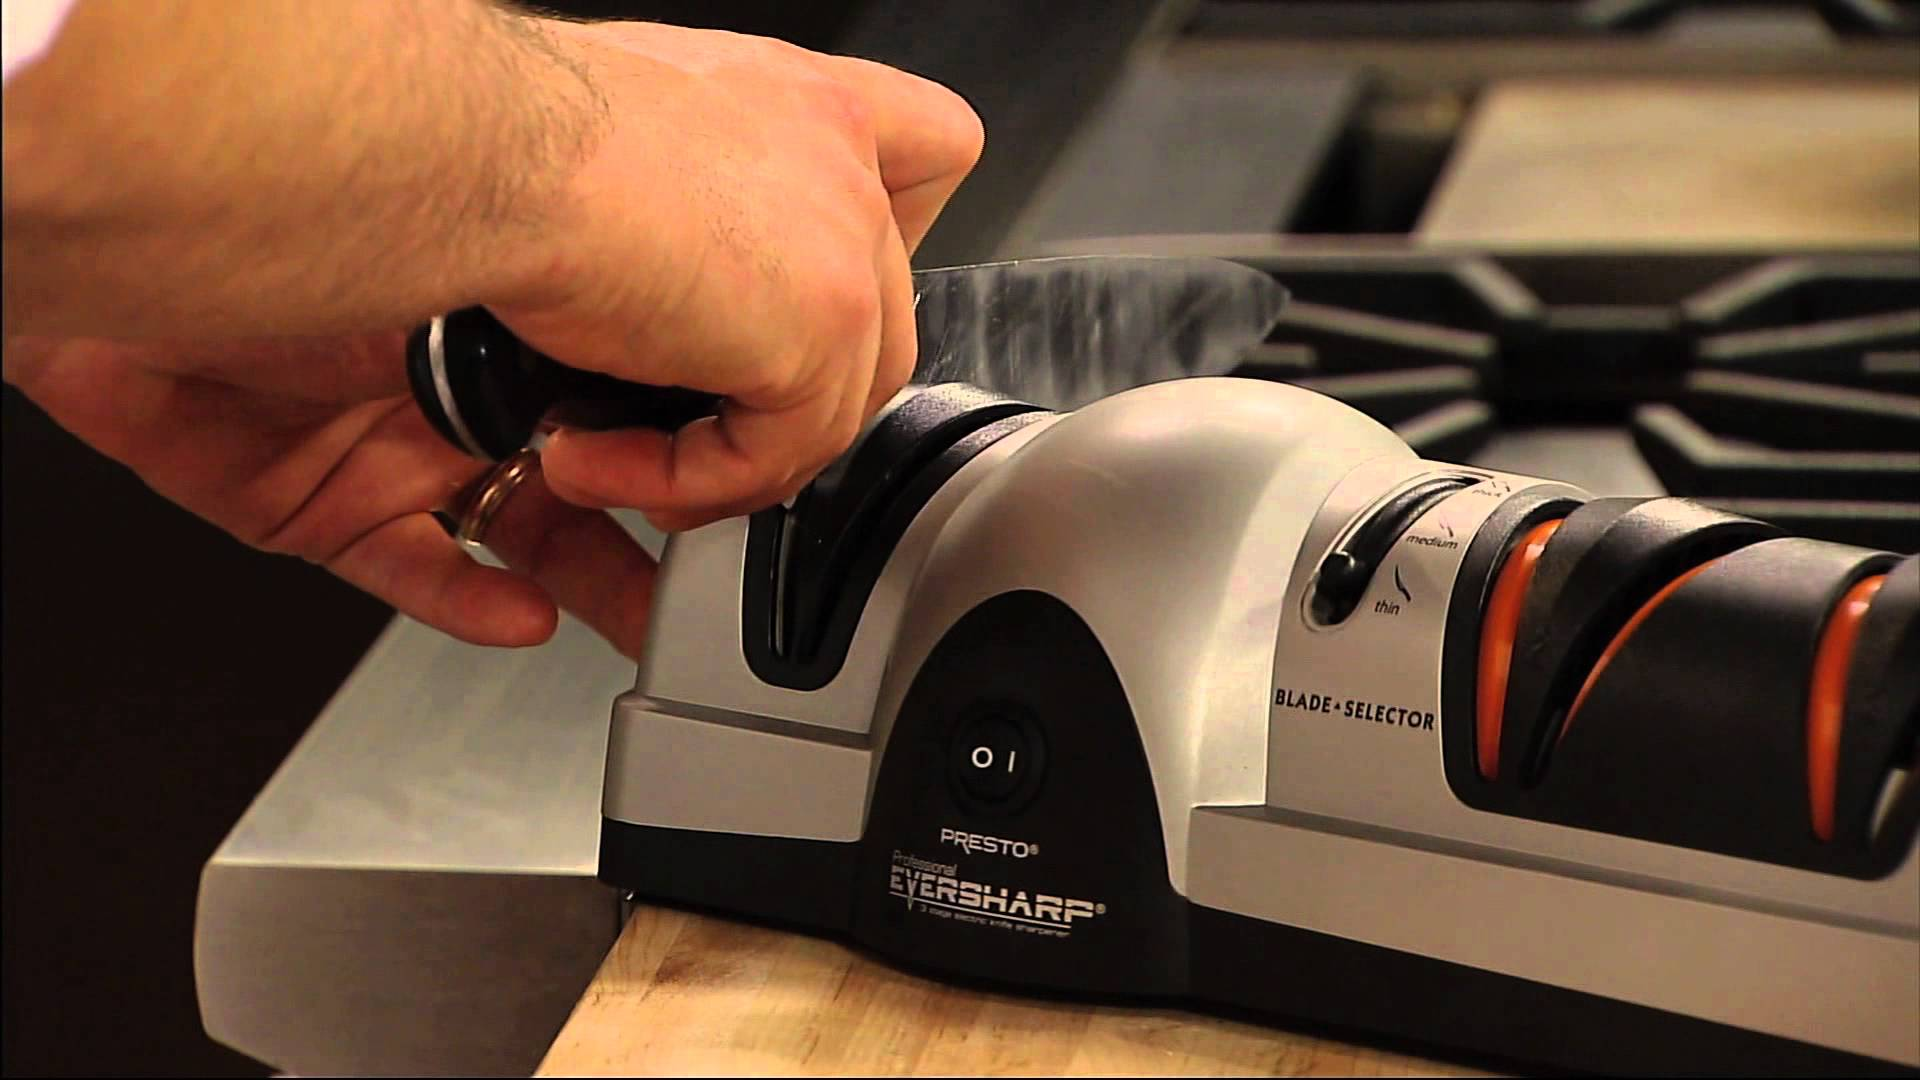 Presto 08800 EverSharp Electric Knife Sharpener Review